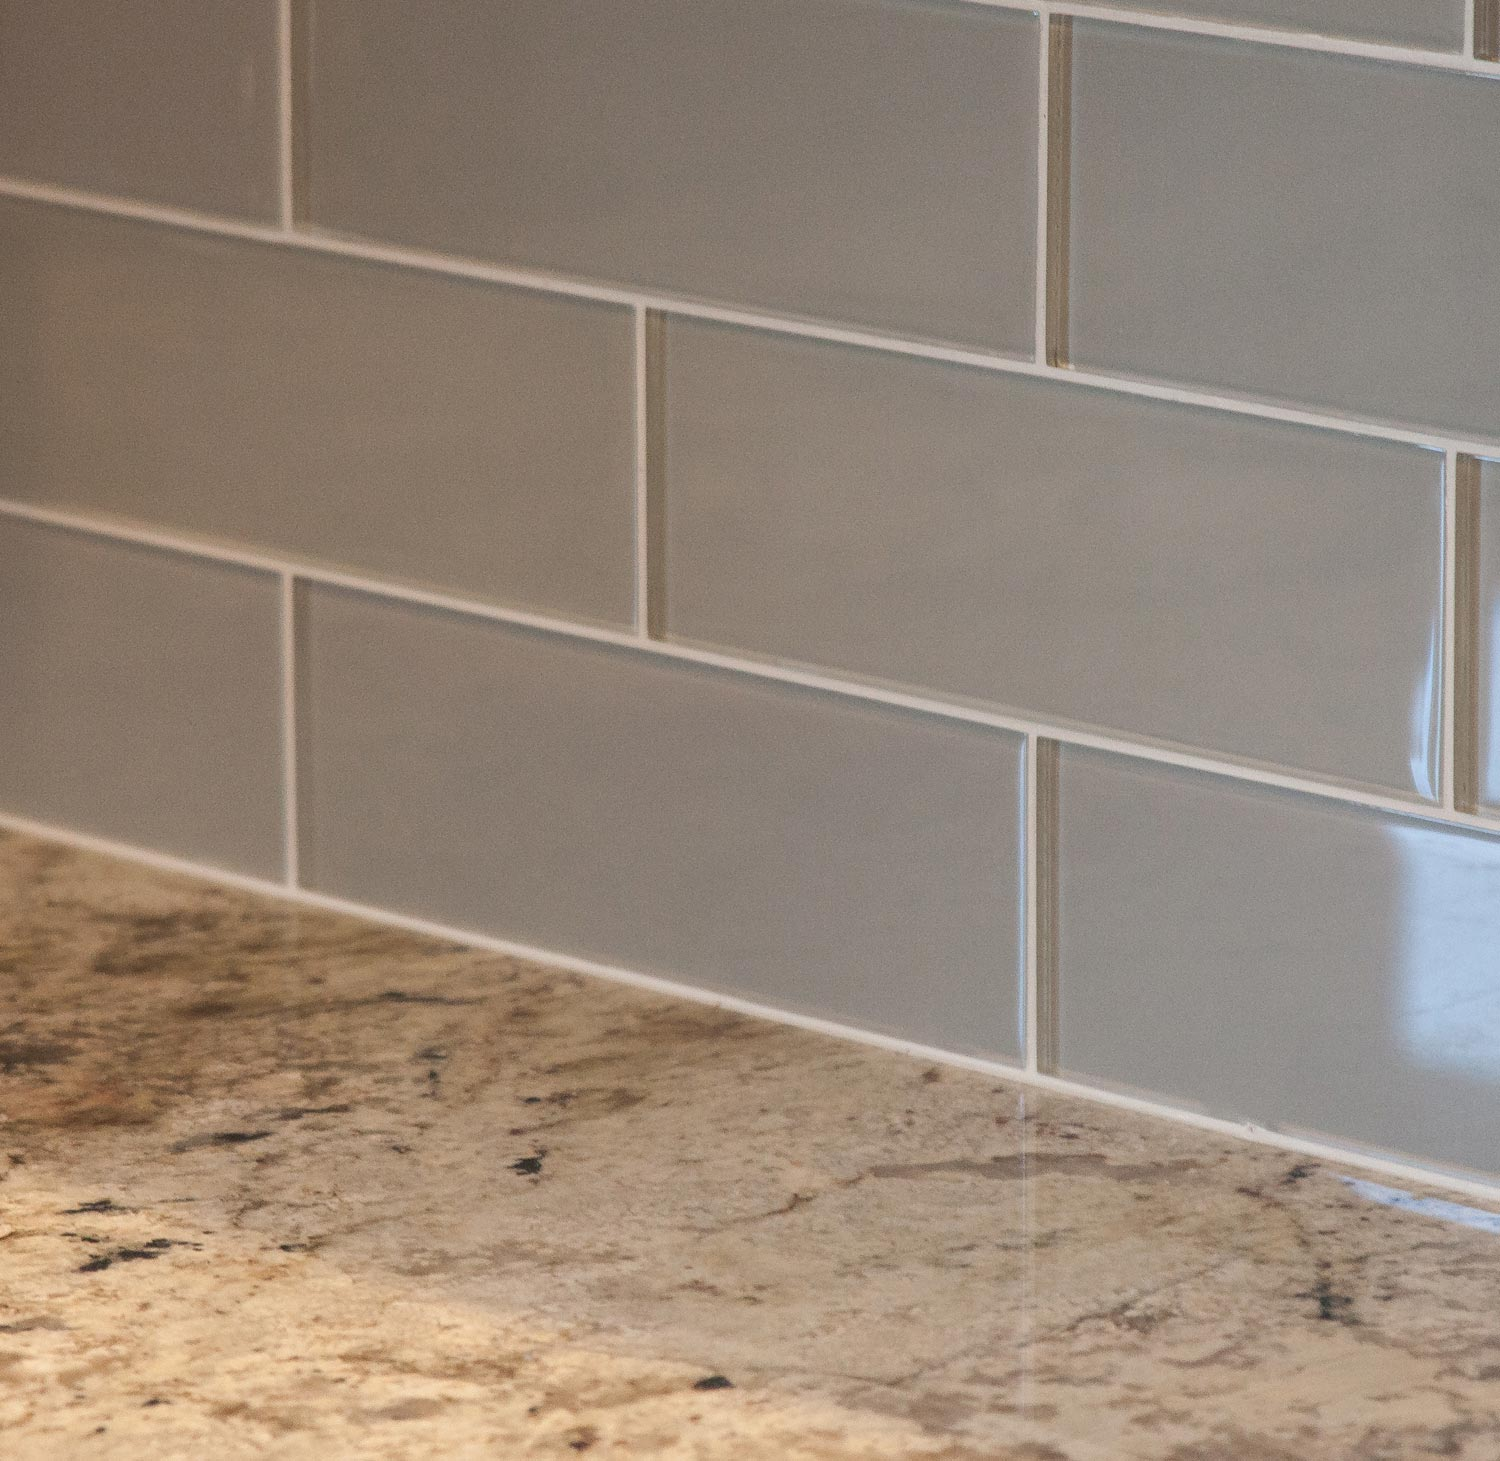 Castle Rock Builder Spec home with island subway tile and farm sink.